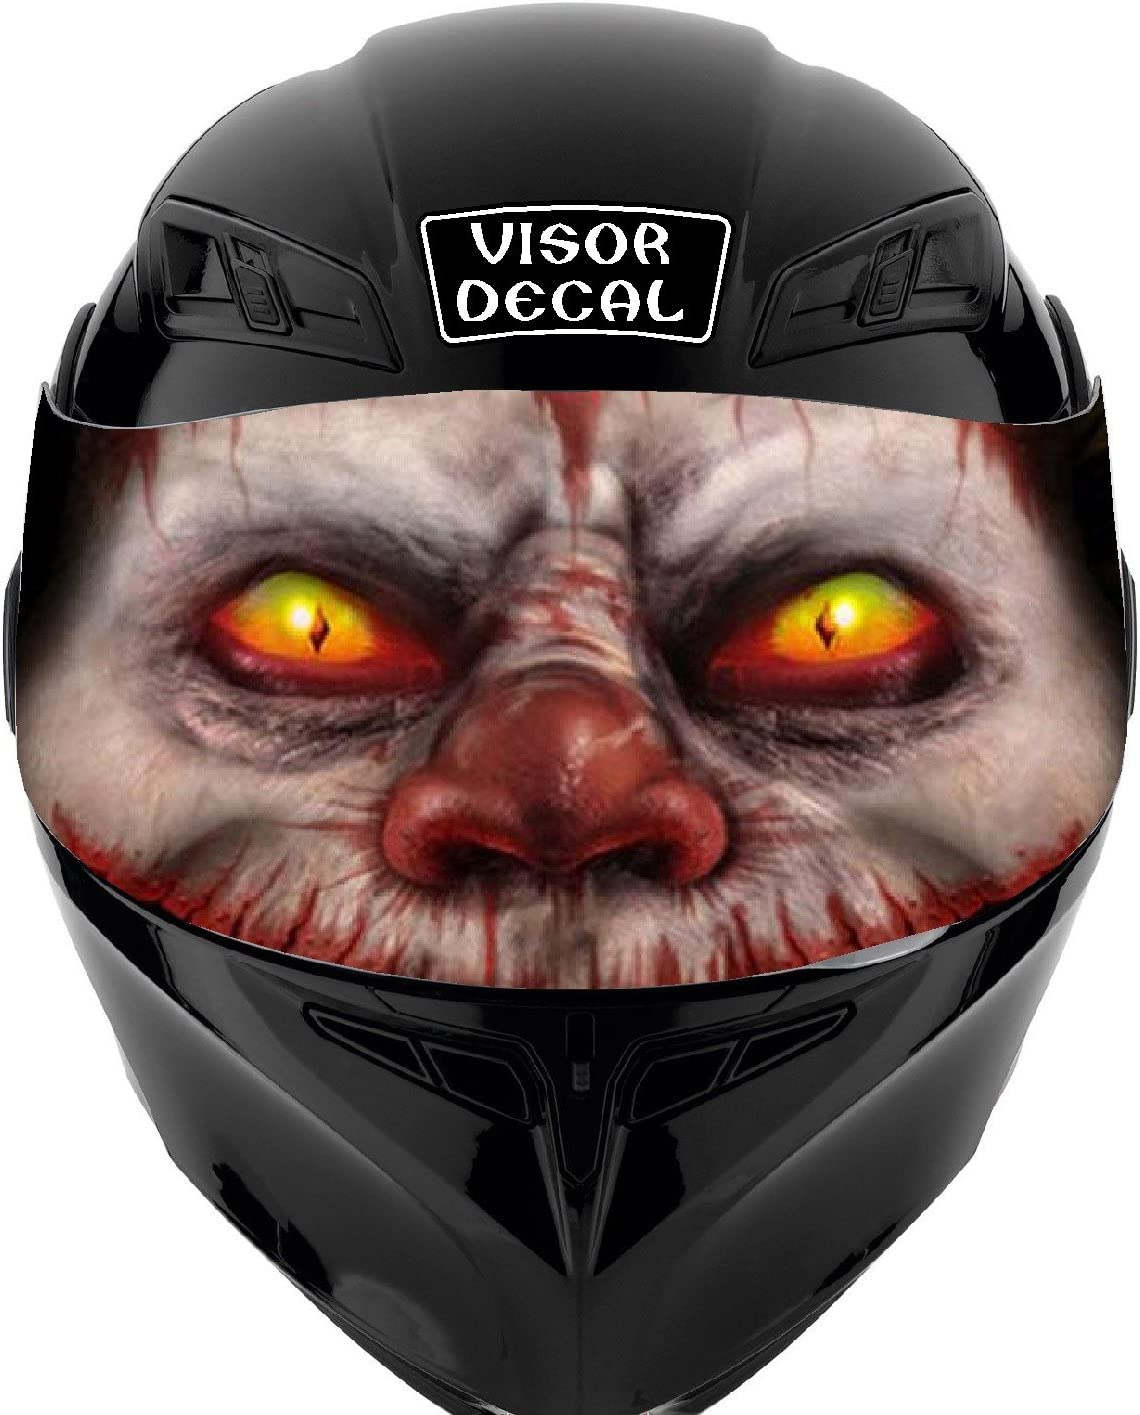 V15 Evil Clown VISOR TINT DECAL Fits: Sticker Ico Special price for a limited time Graphic Mail order Helmet